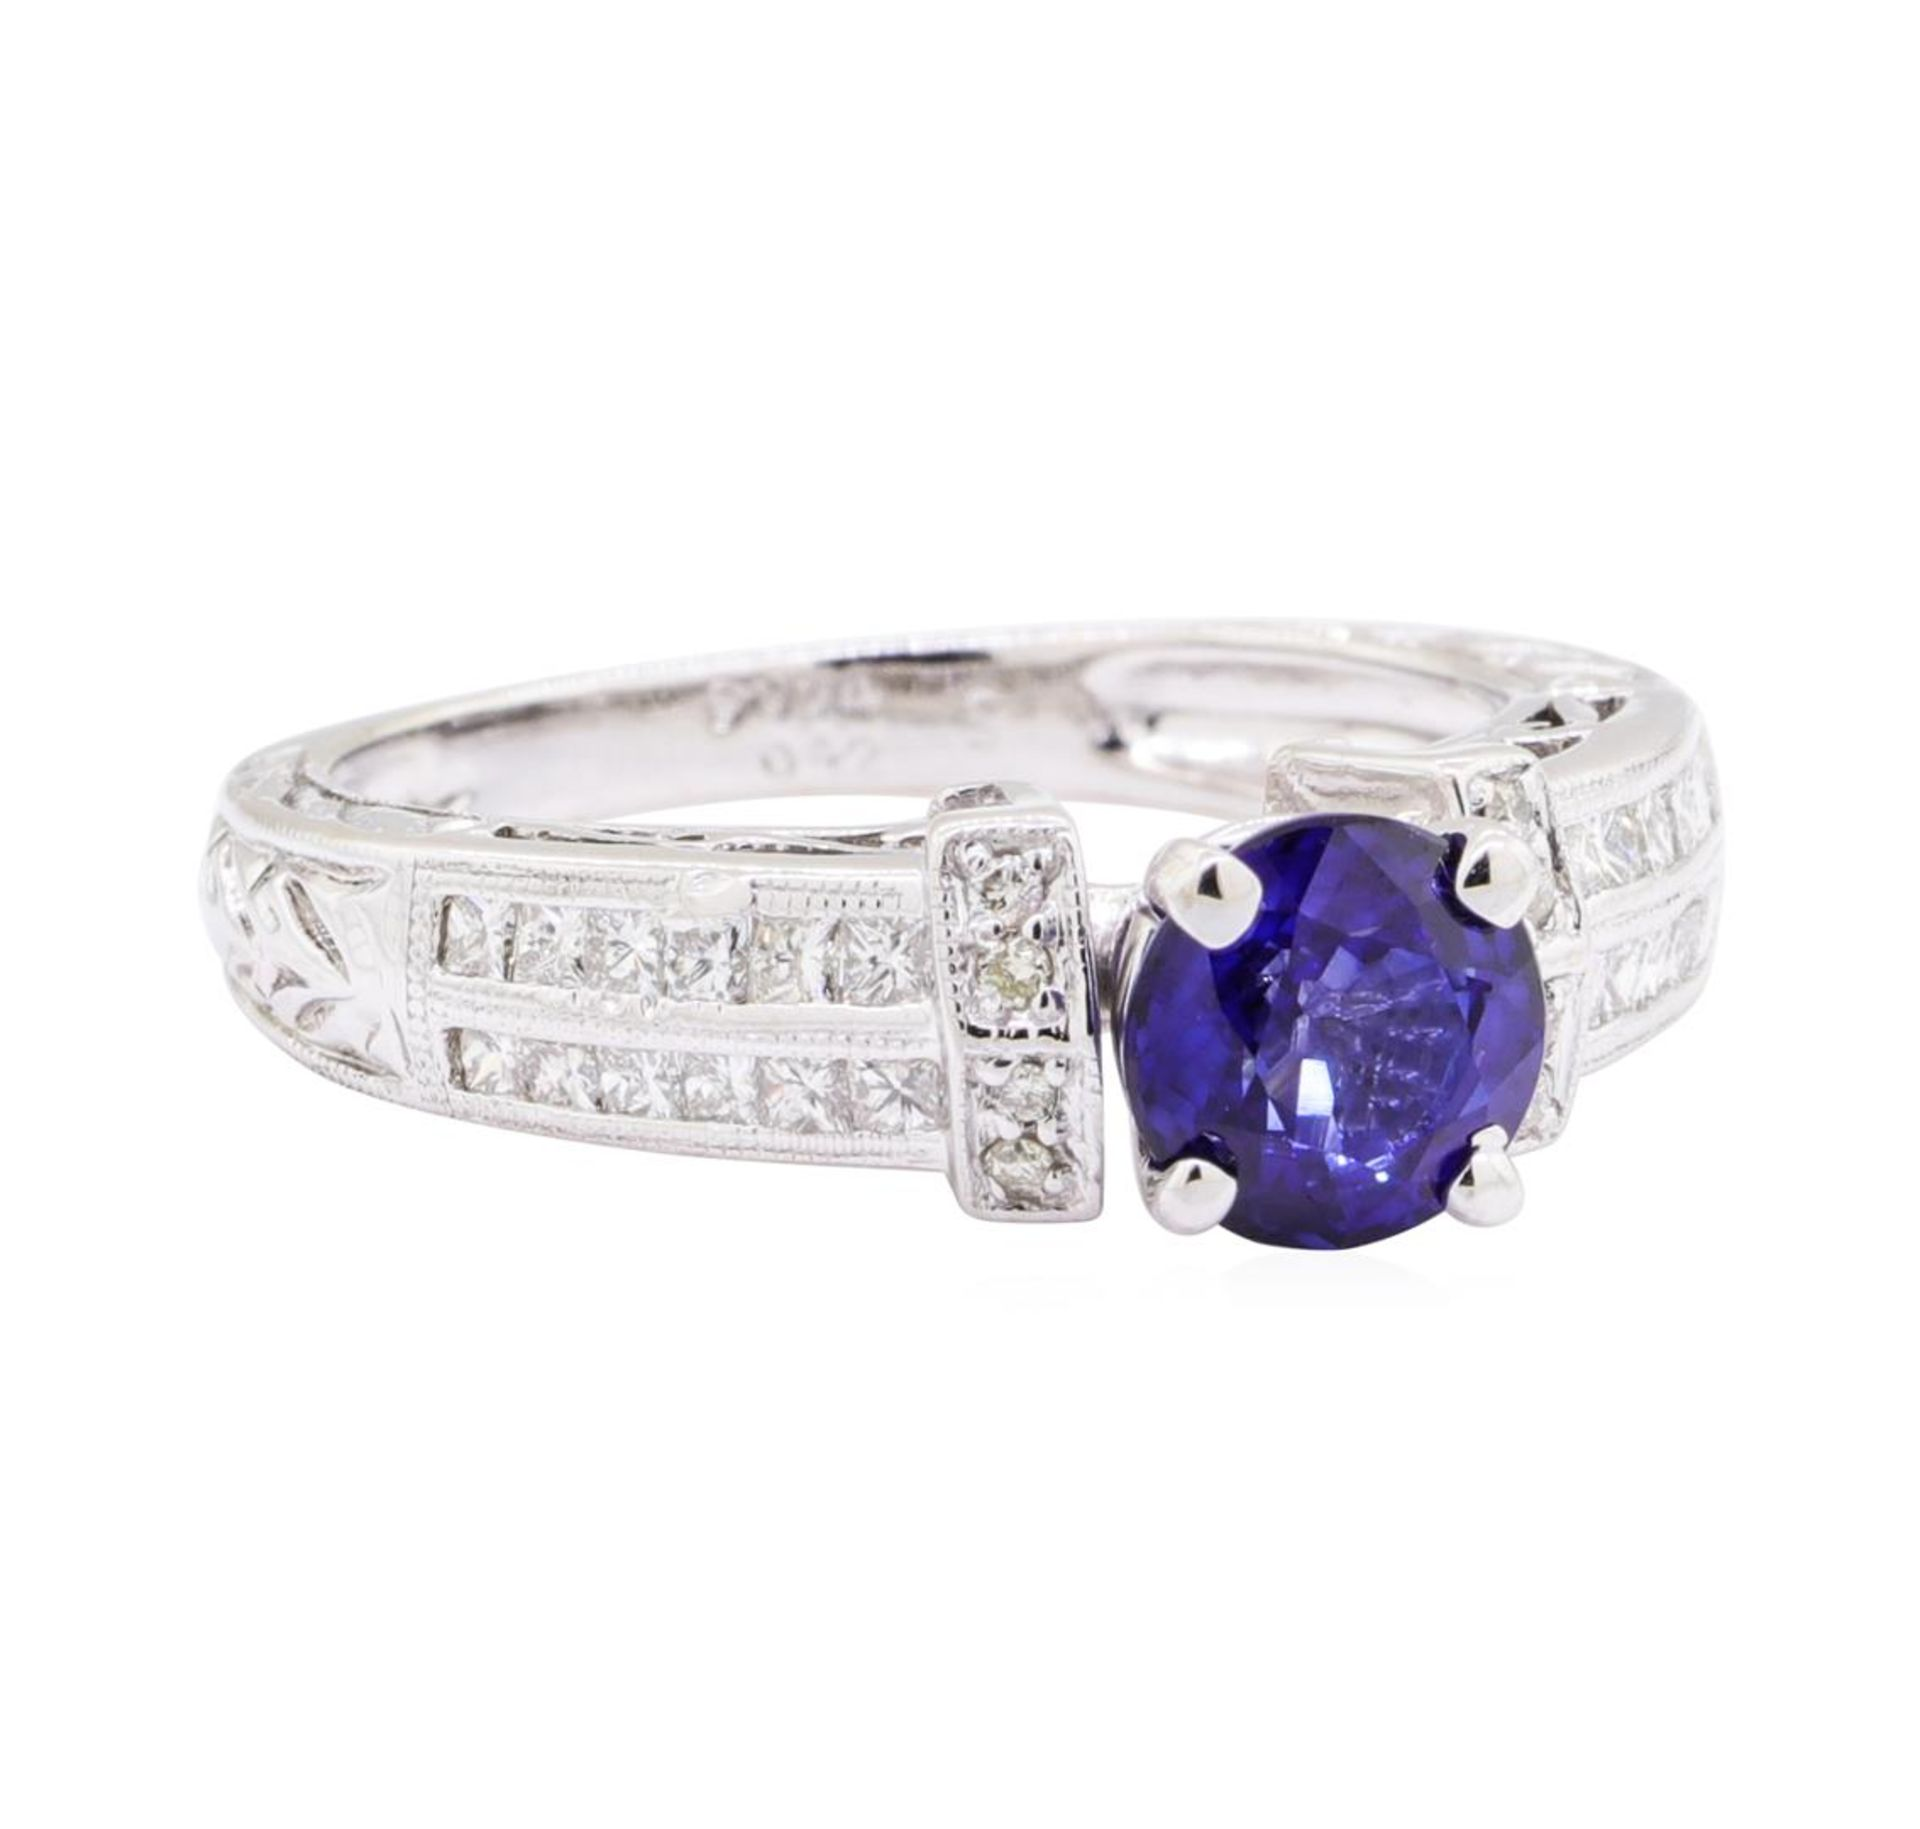 1.36ct Sapphire and Diamond Ring - 14KT White Gold